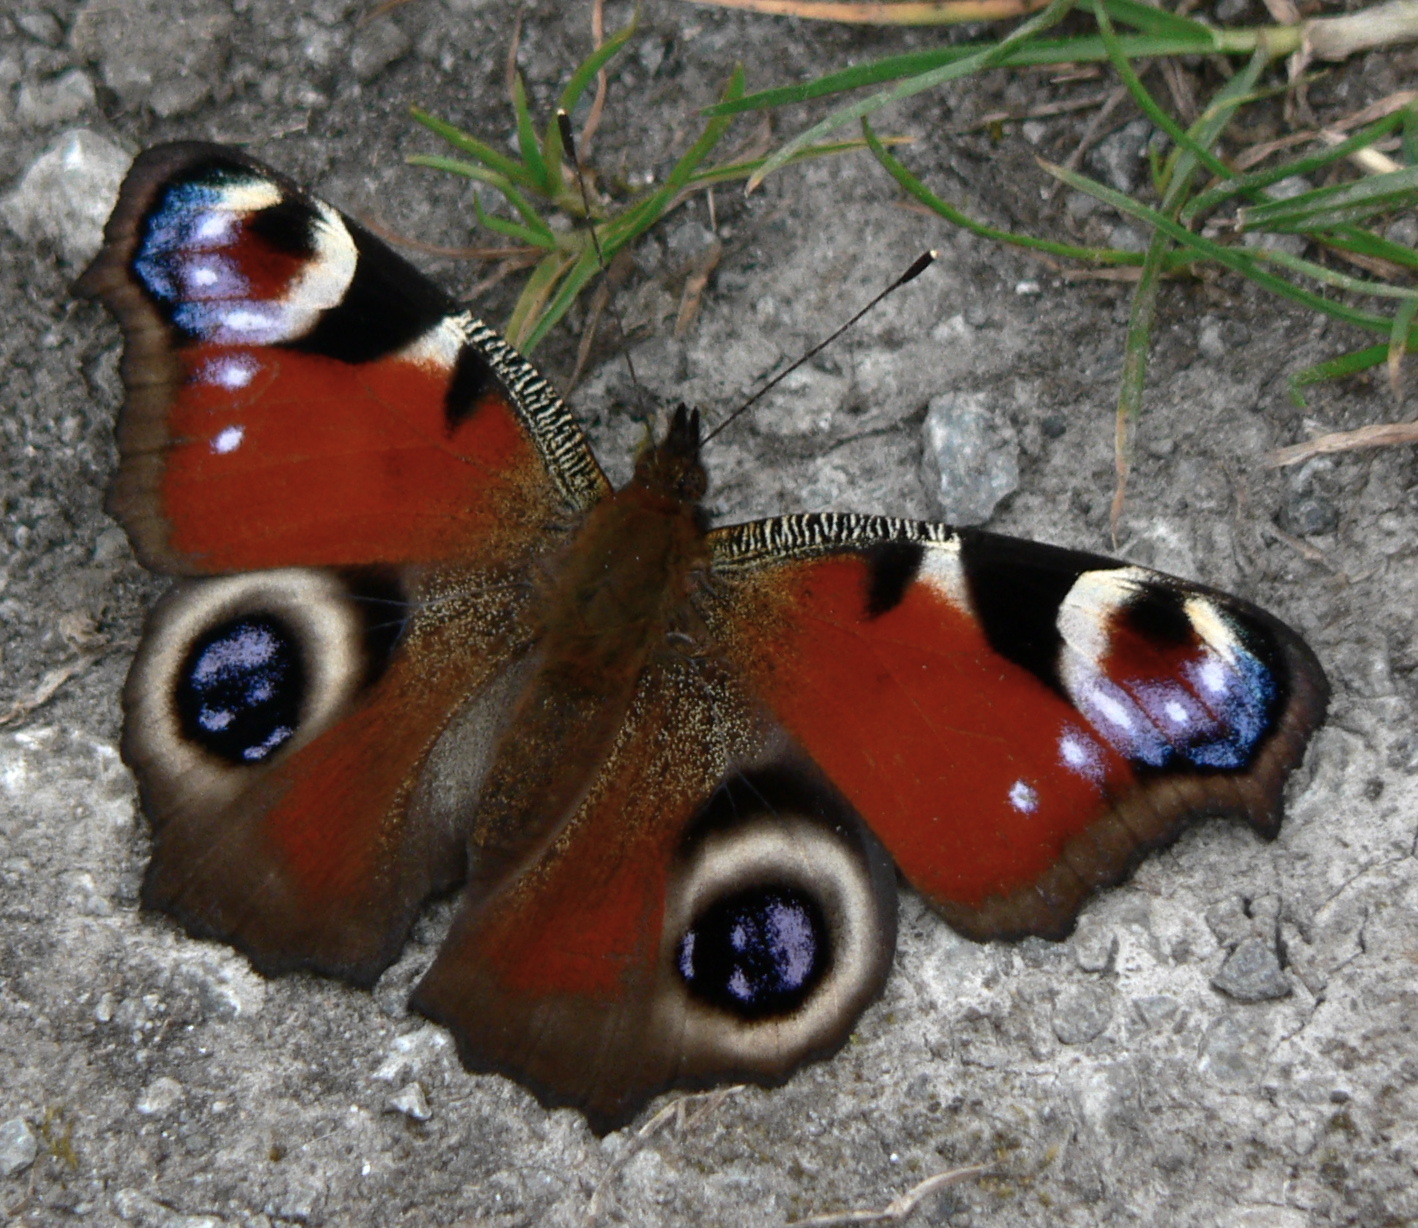 http://upload.wikimedia.org/wikipedia/commons/6/67/Peacock_Butterfly.jpg